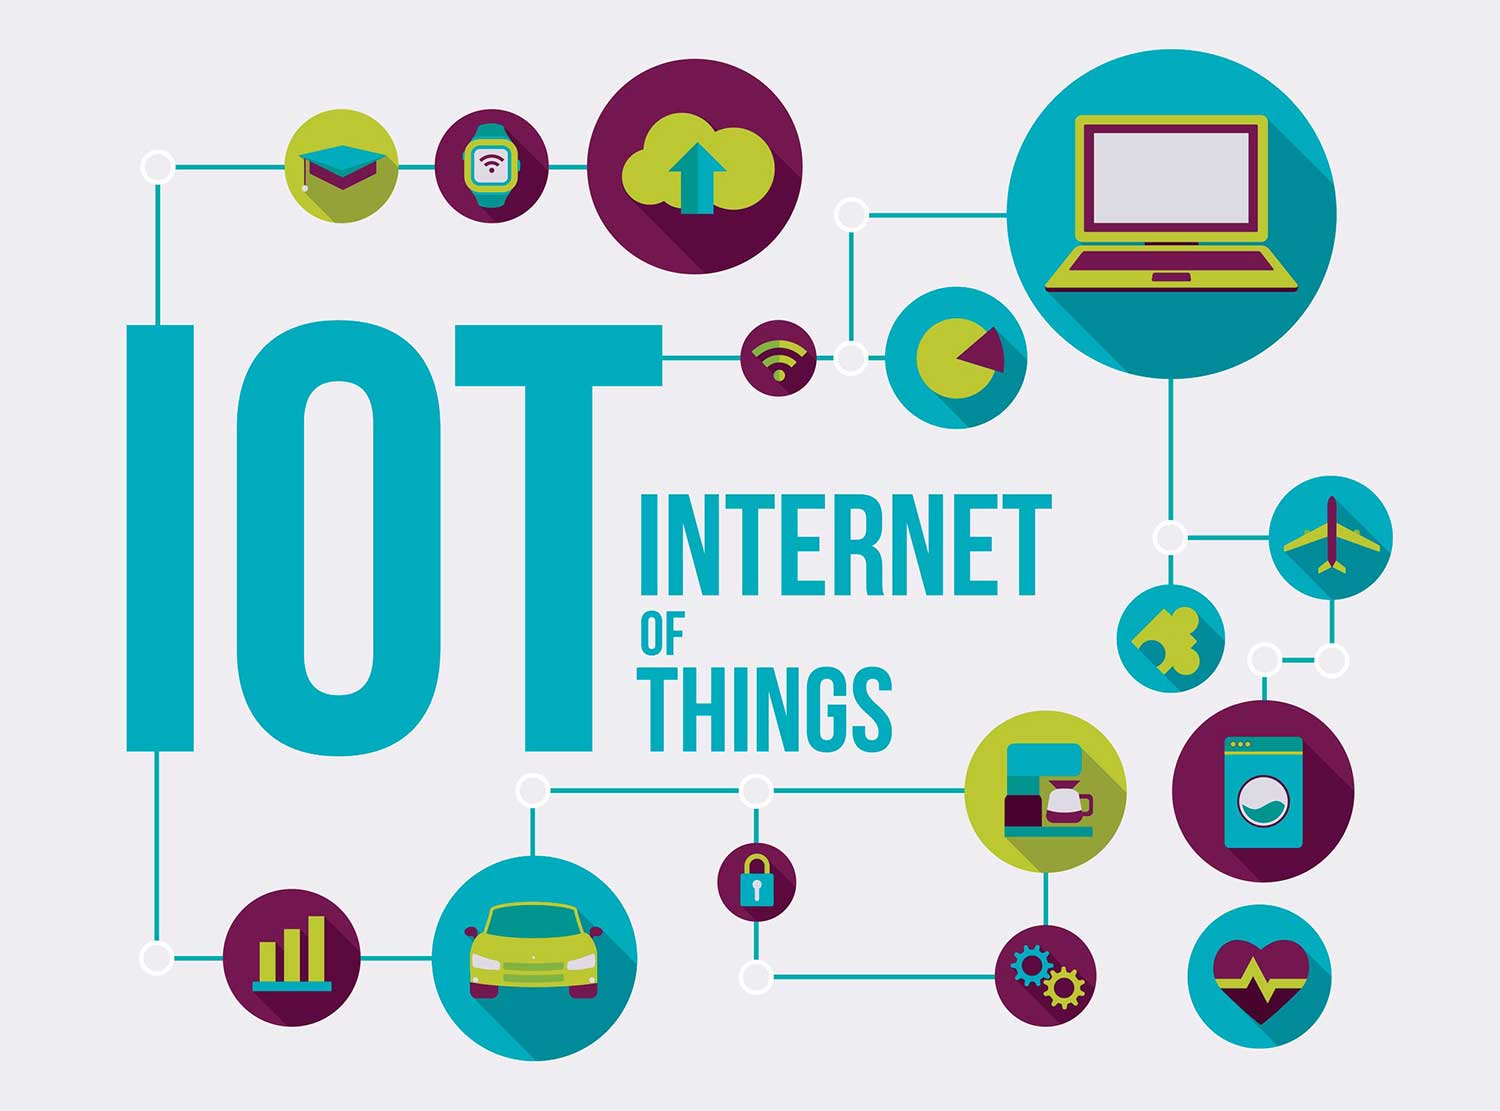 Dell IoT (Internet of Things)